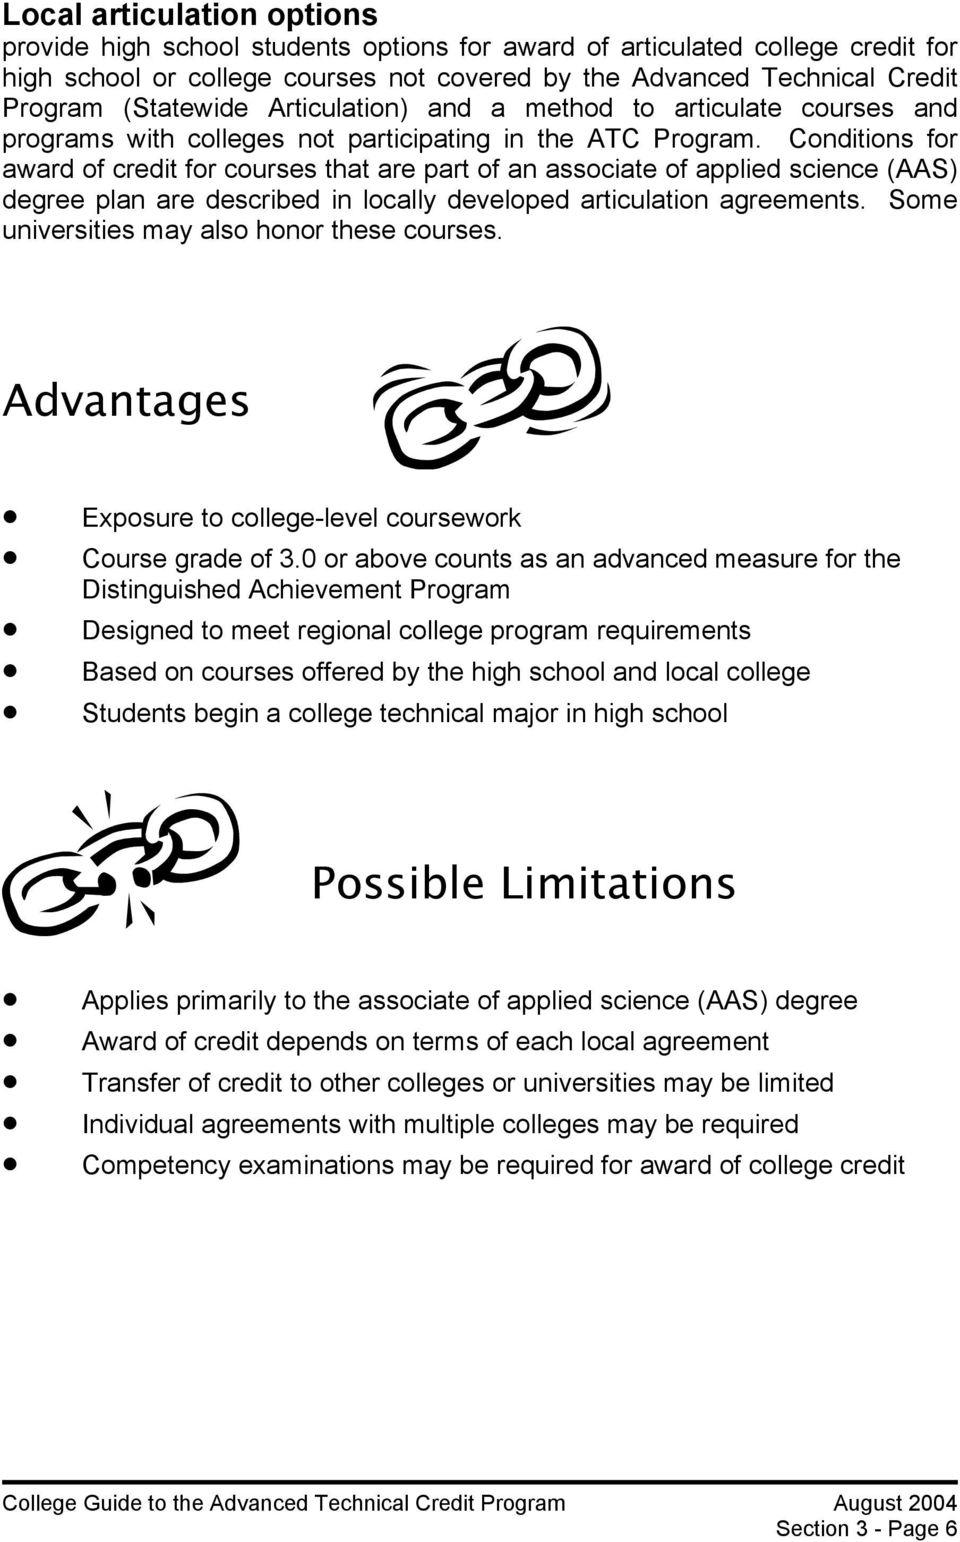 Conditions for award of credit for courses that are part of an associate of applied science (AAS) degree plan are described in locally developed articulation agreements.